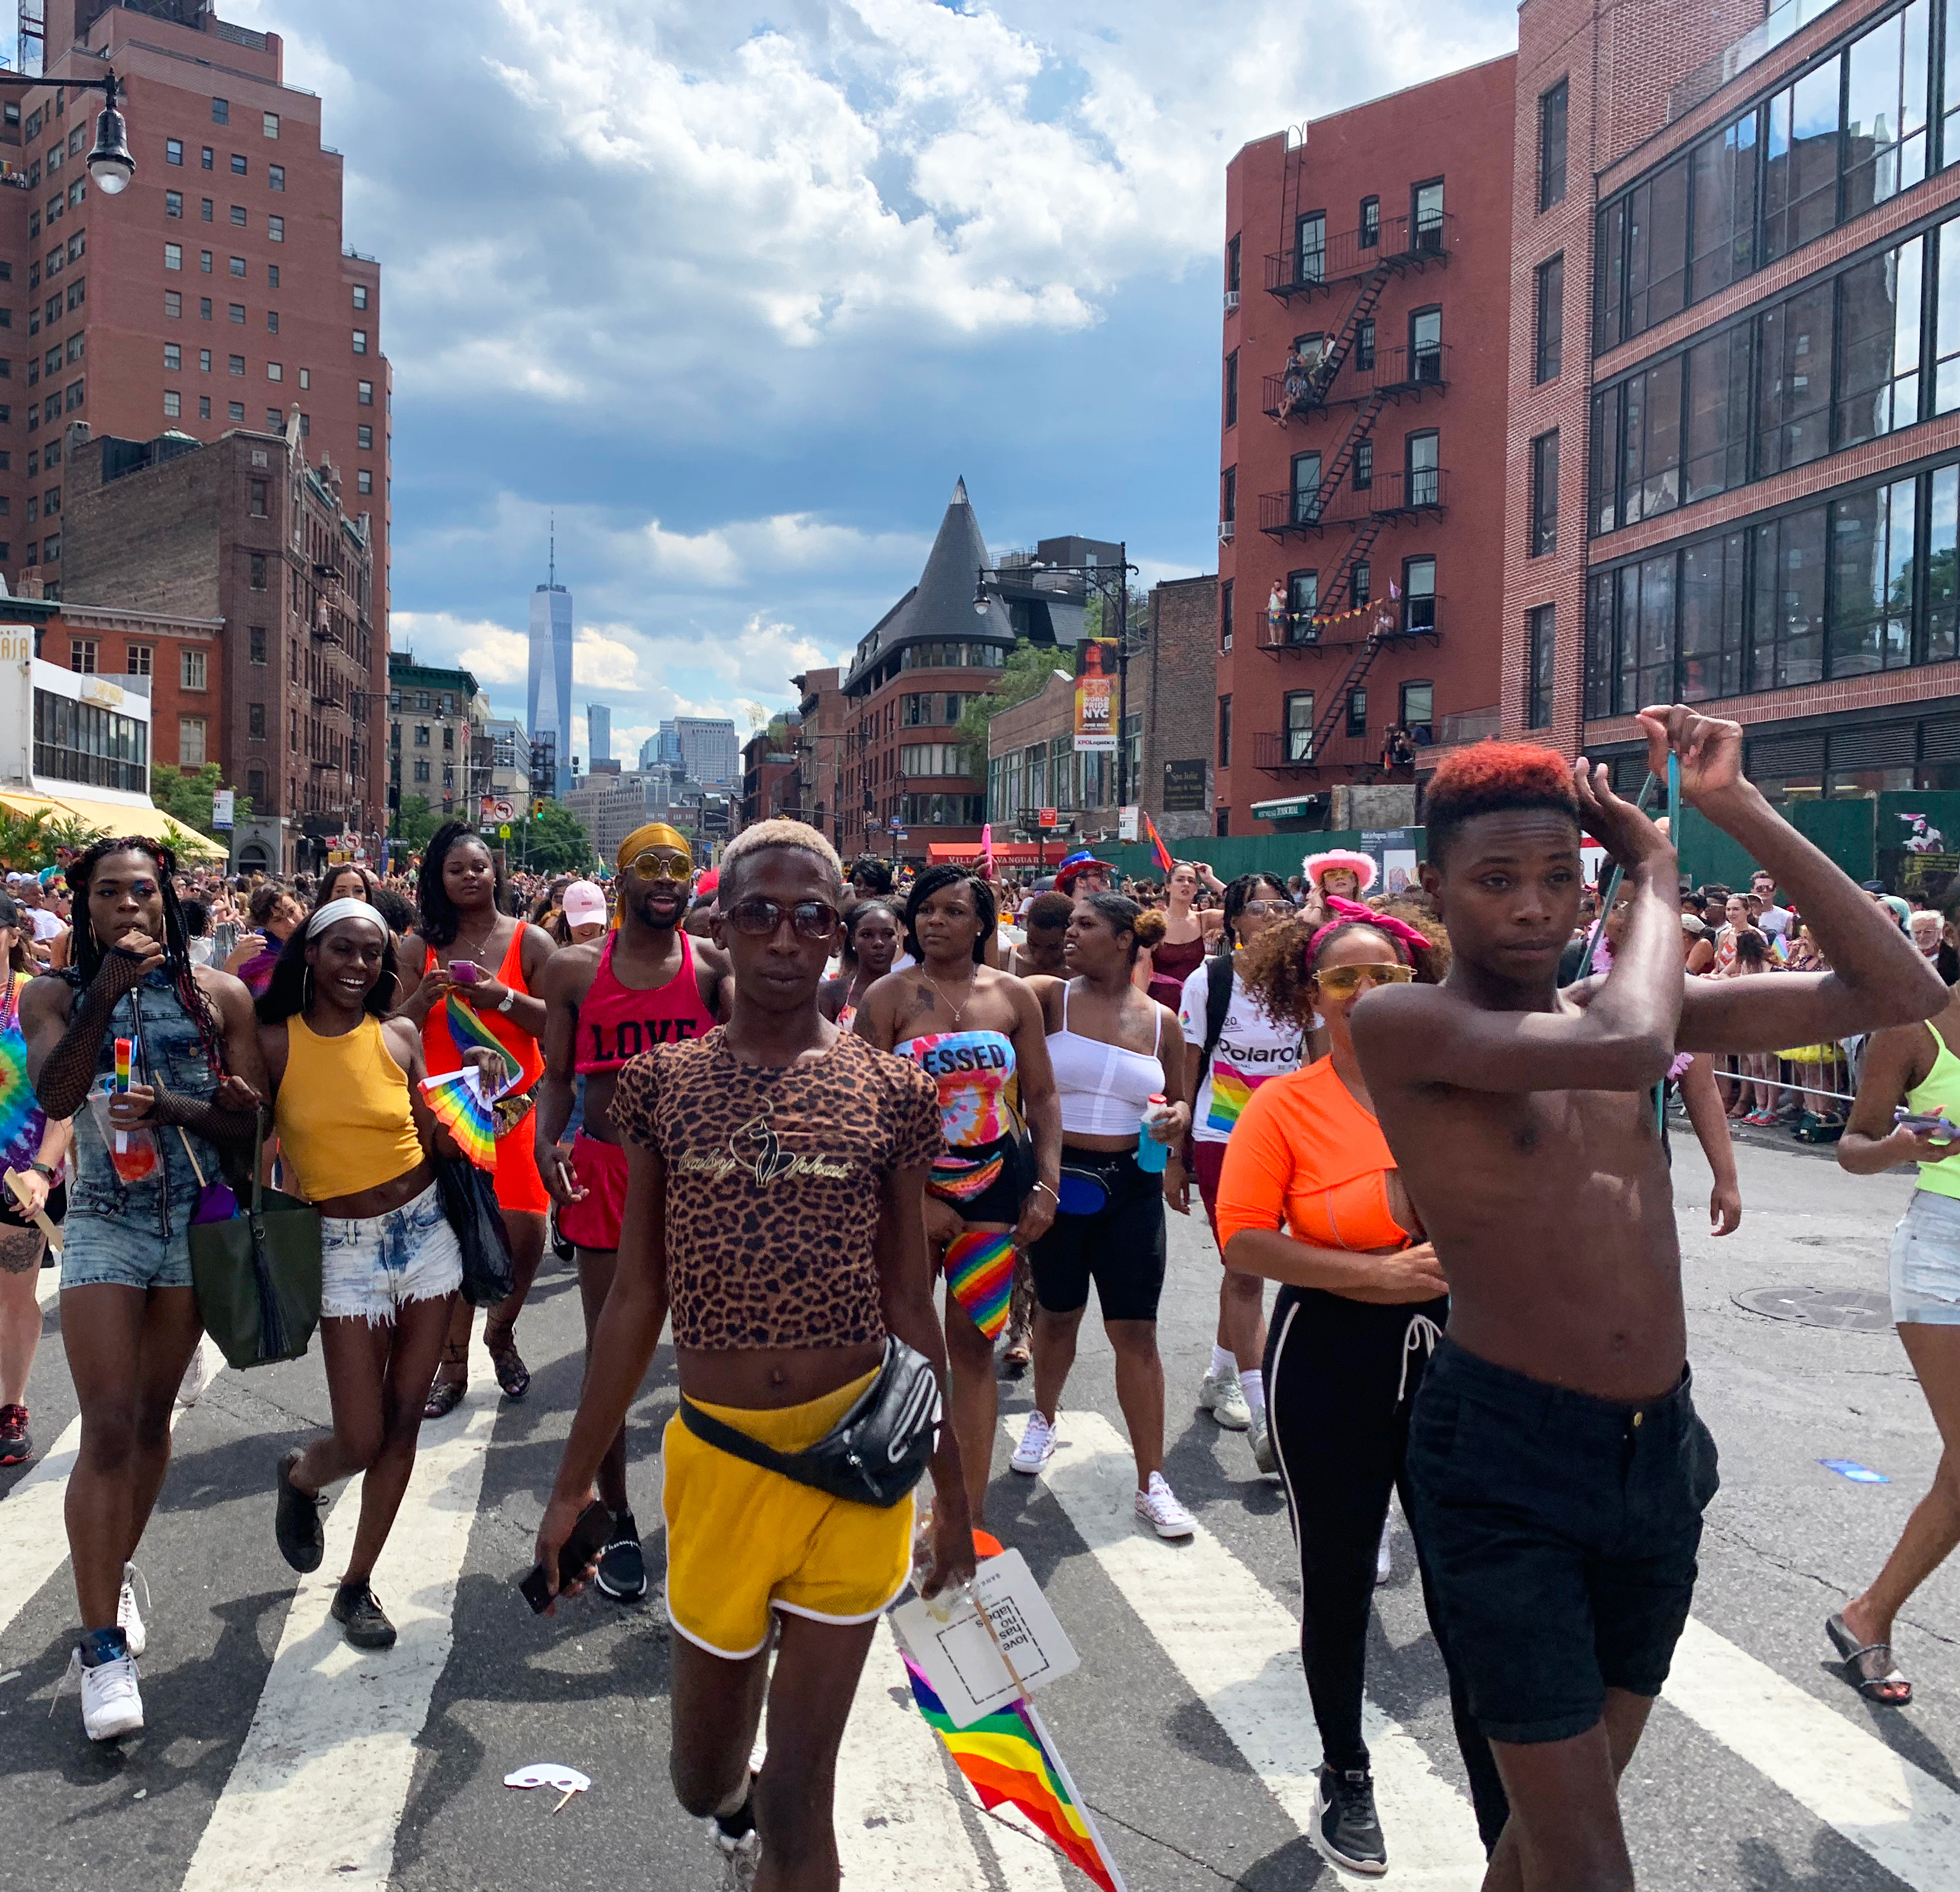 World Pride New York City 2019 / photograph by us